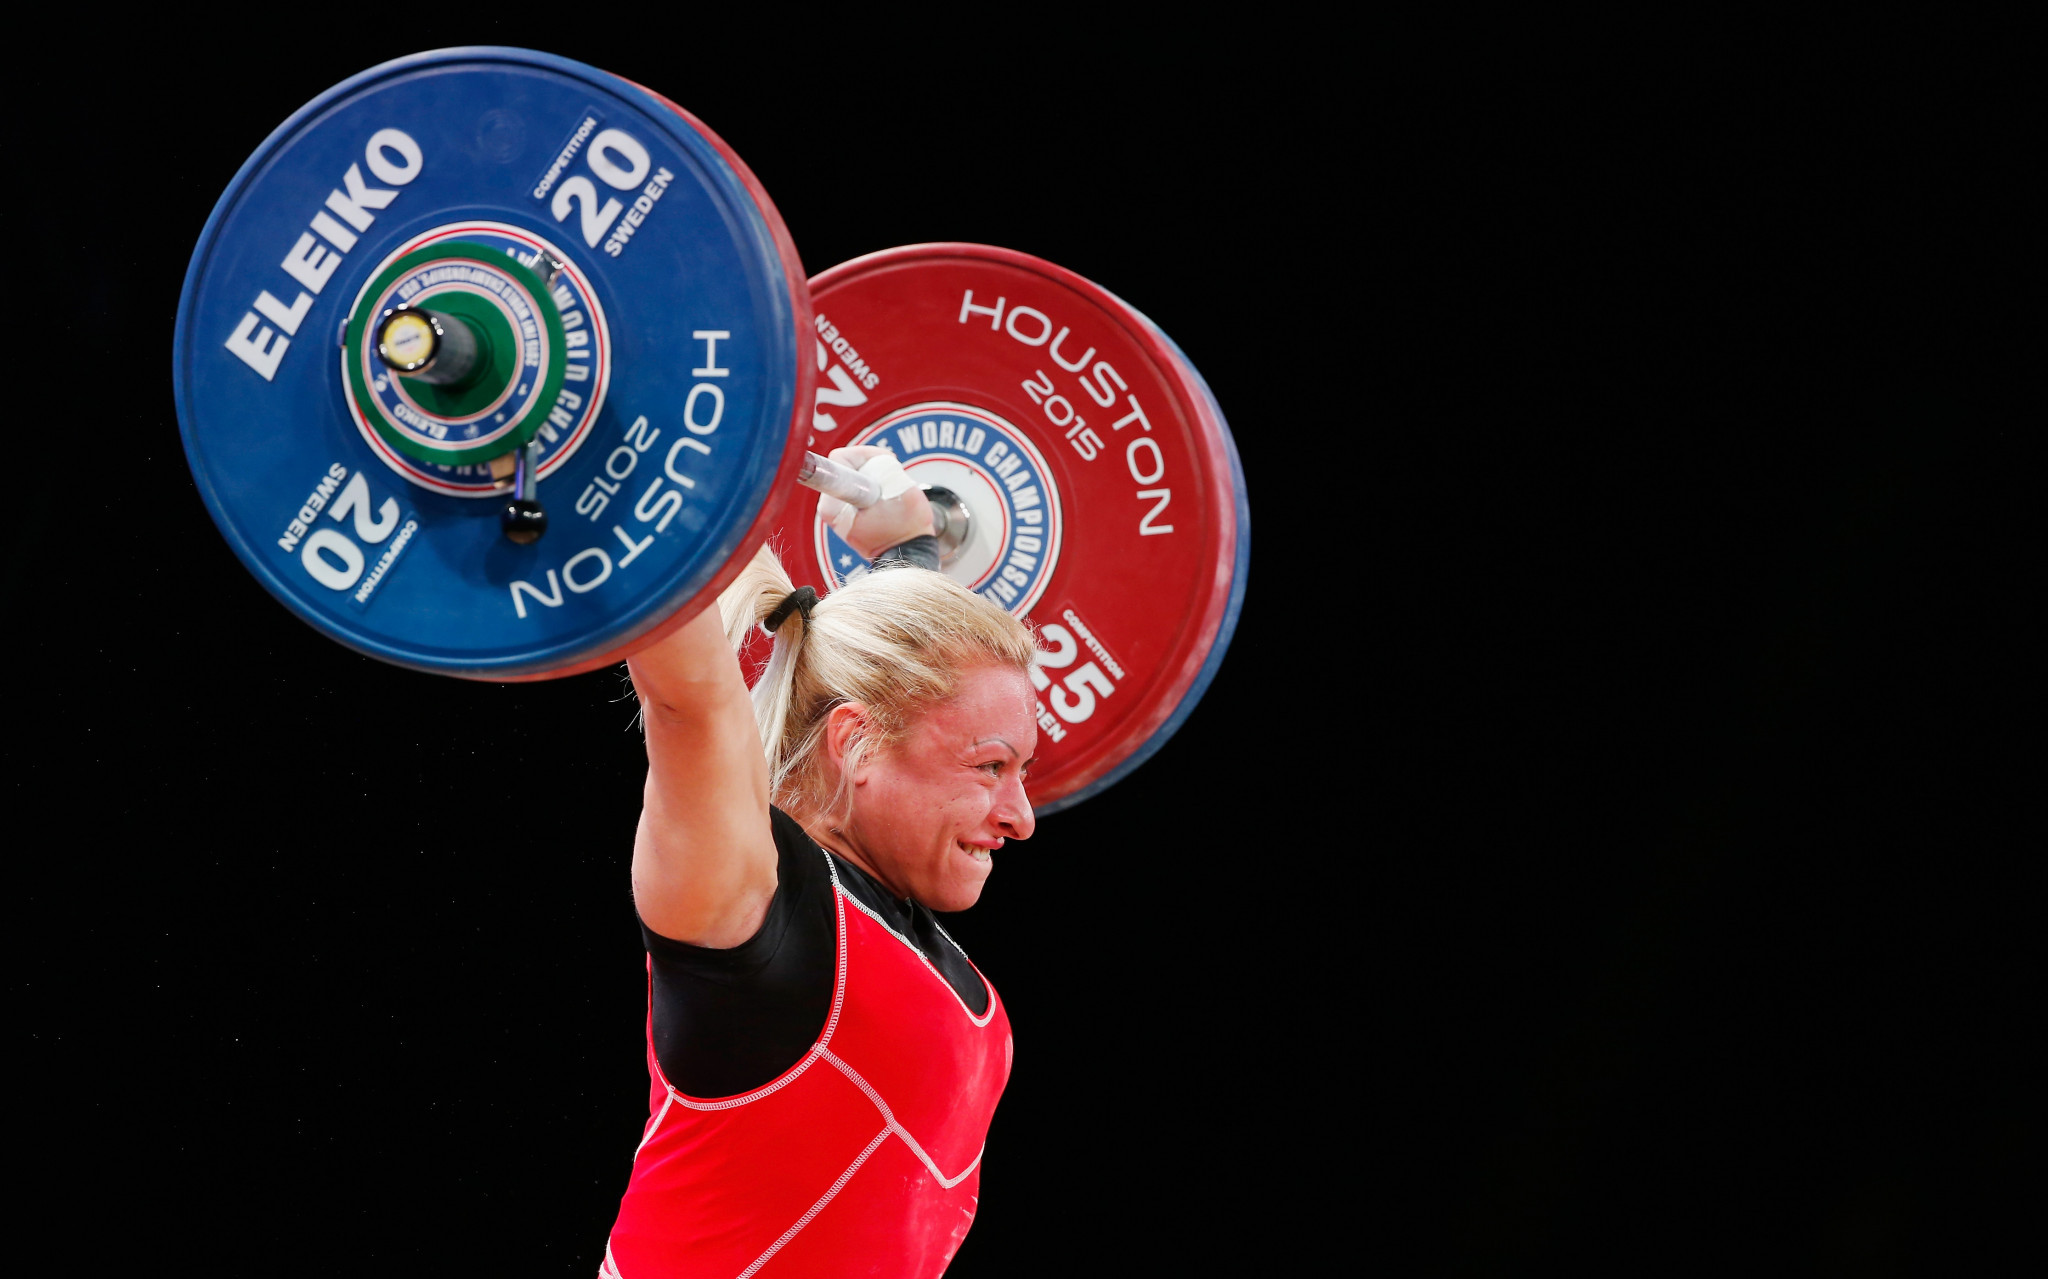 Olympic Games weightlifting doper Kostova tests positive again